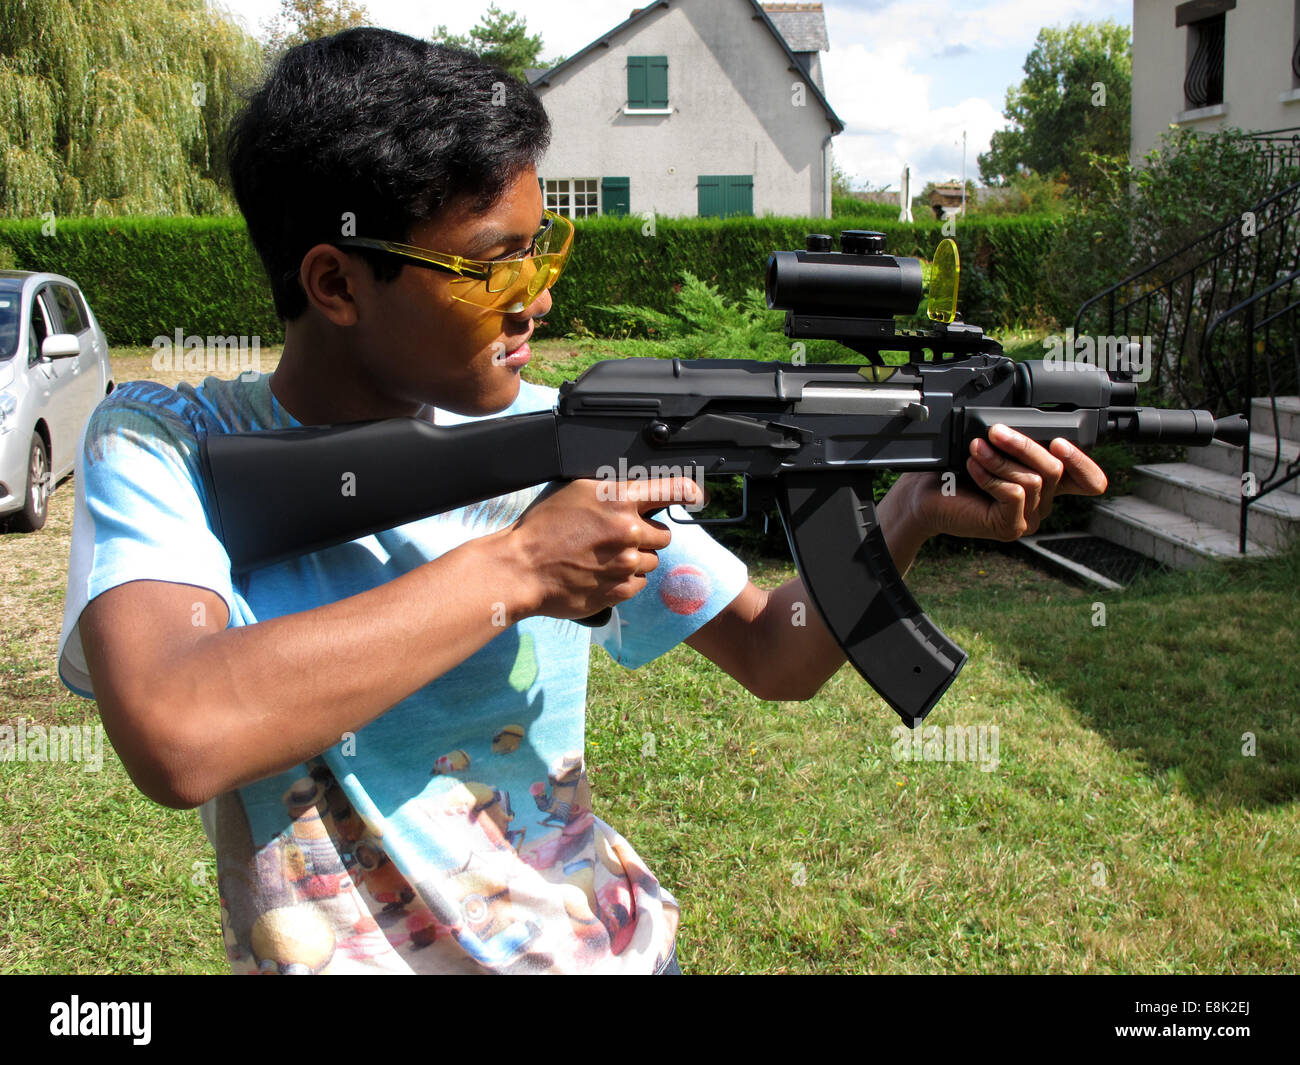 Airsoft 16 ans